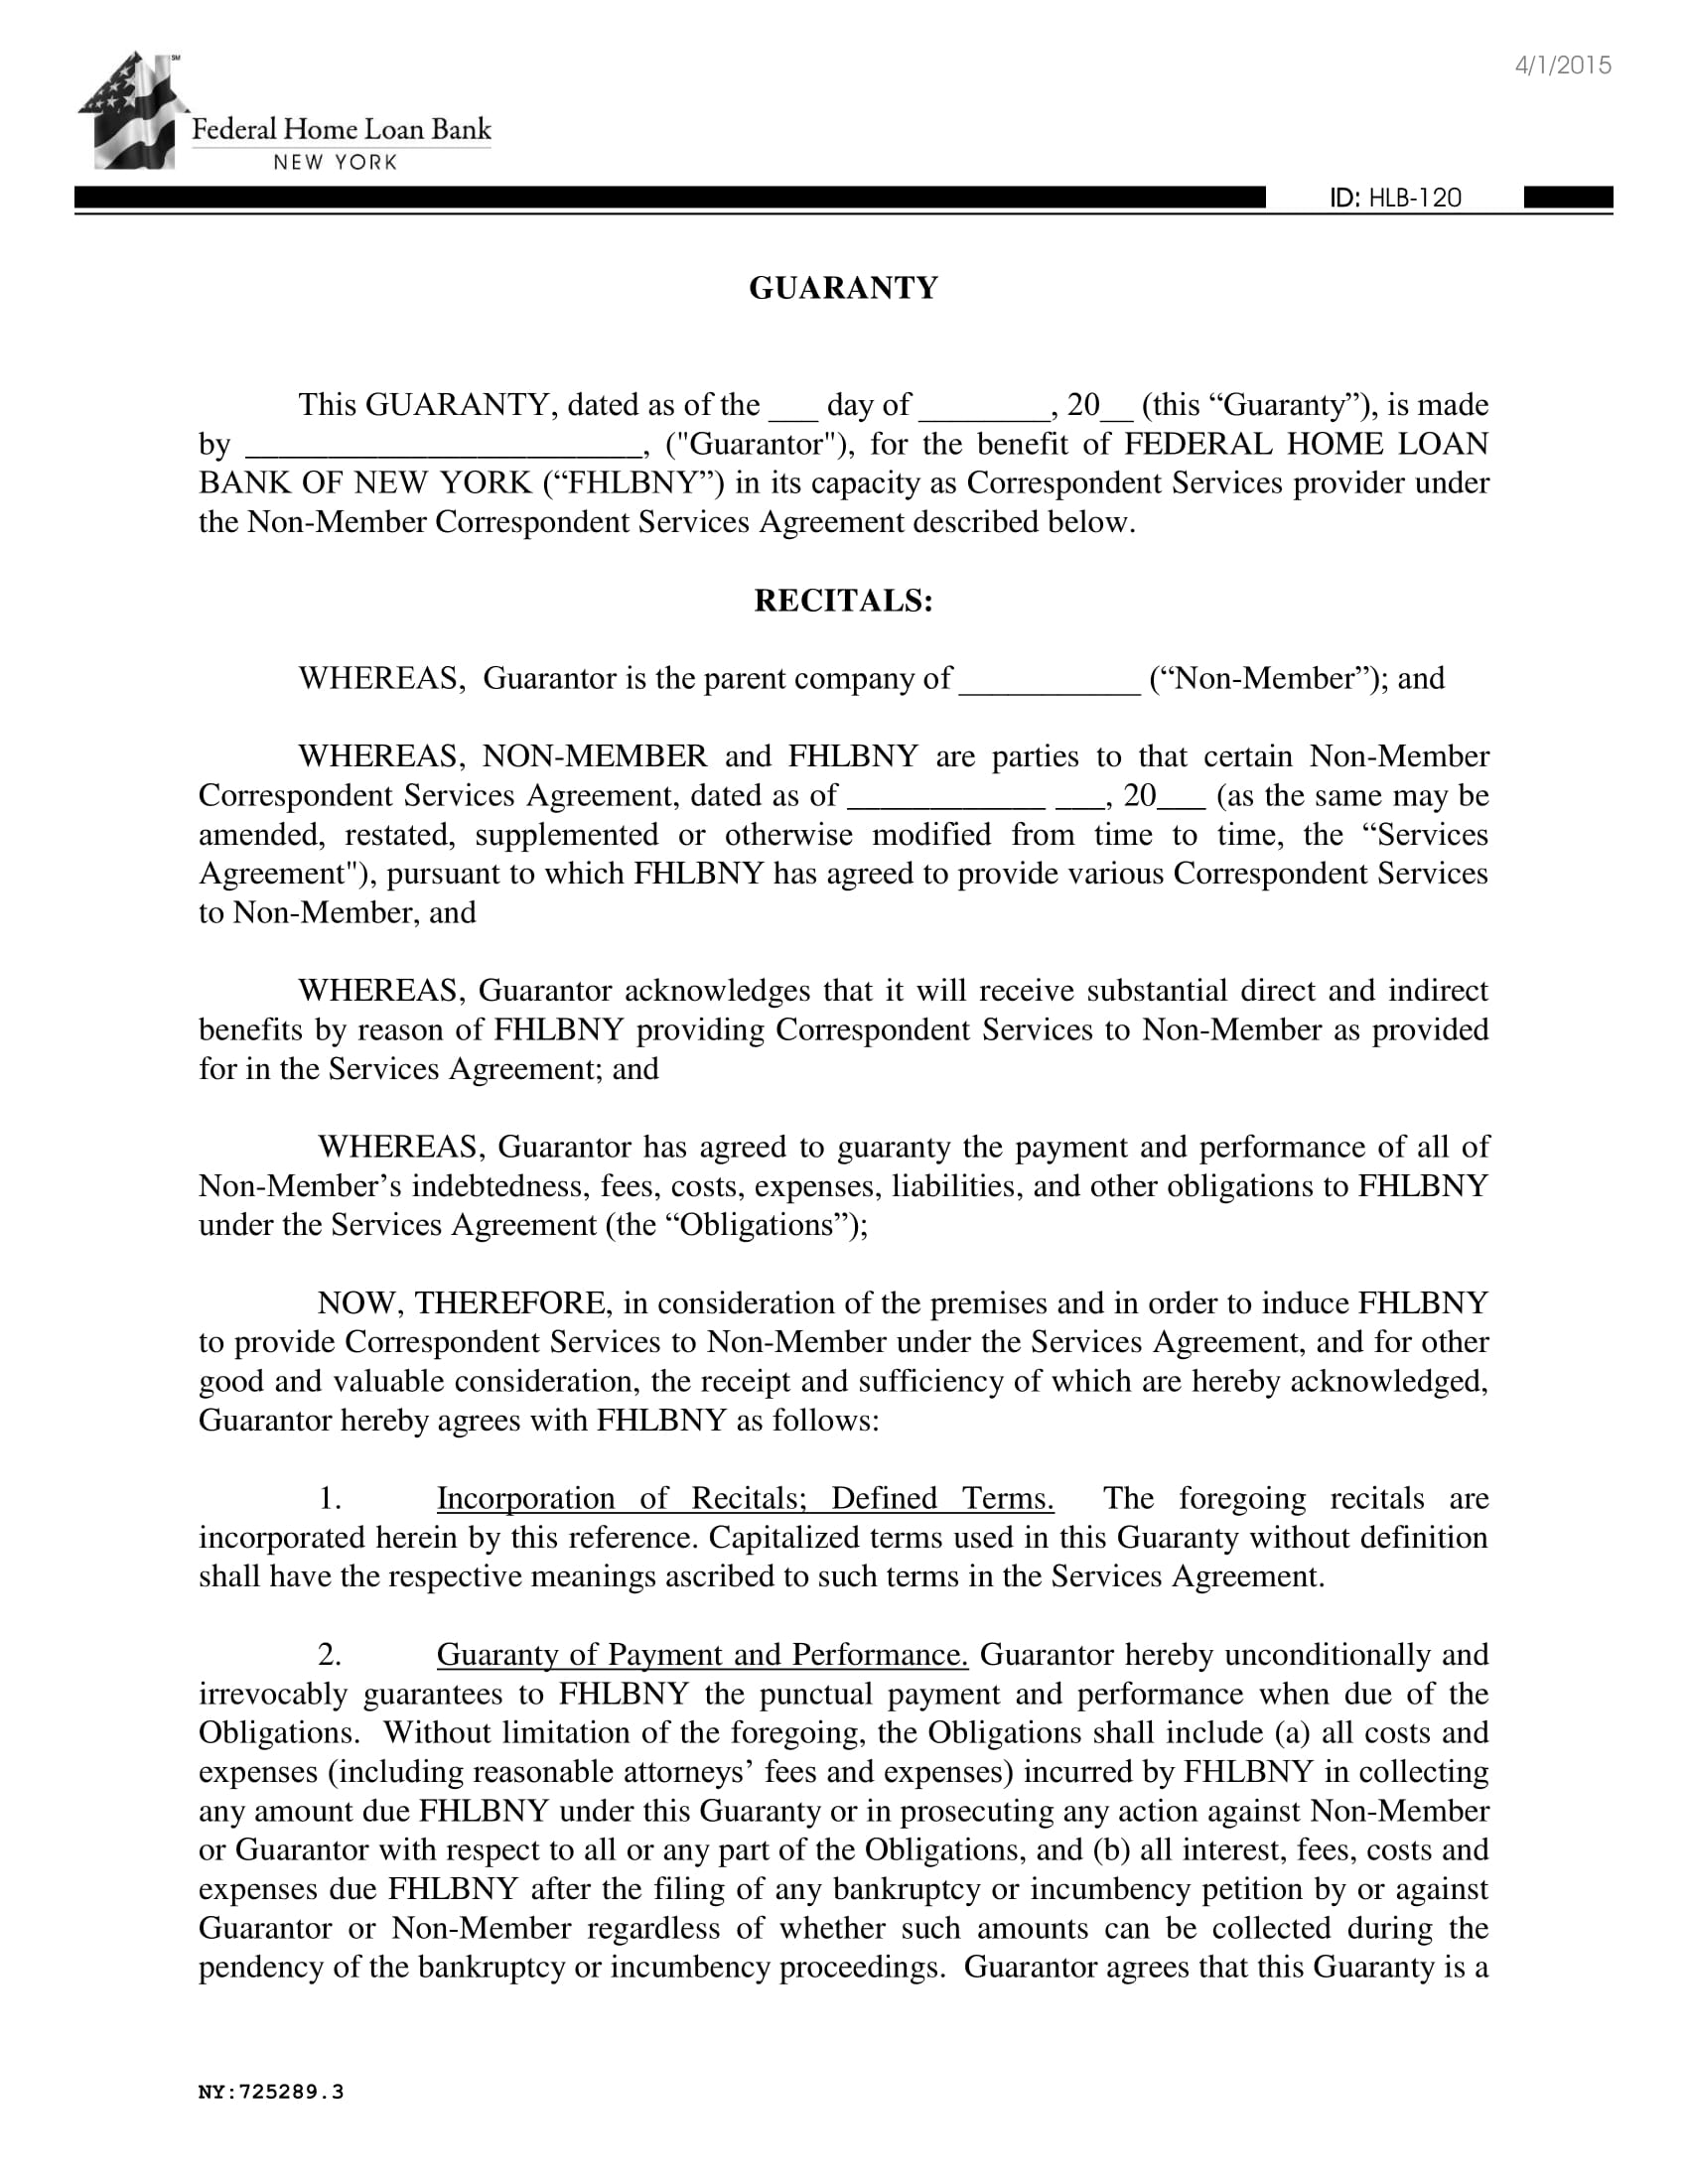 6 Guaranty Agreement Contract Forms Pdf Doc